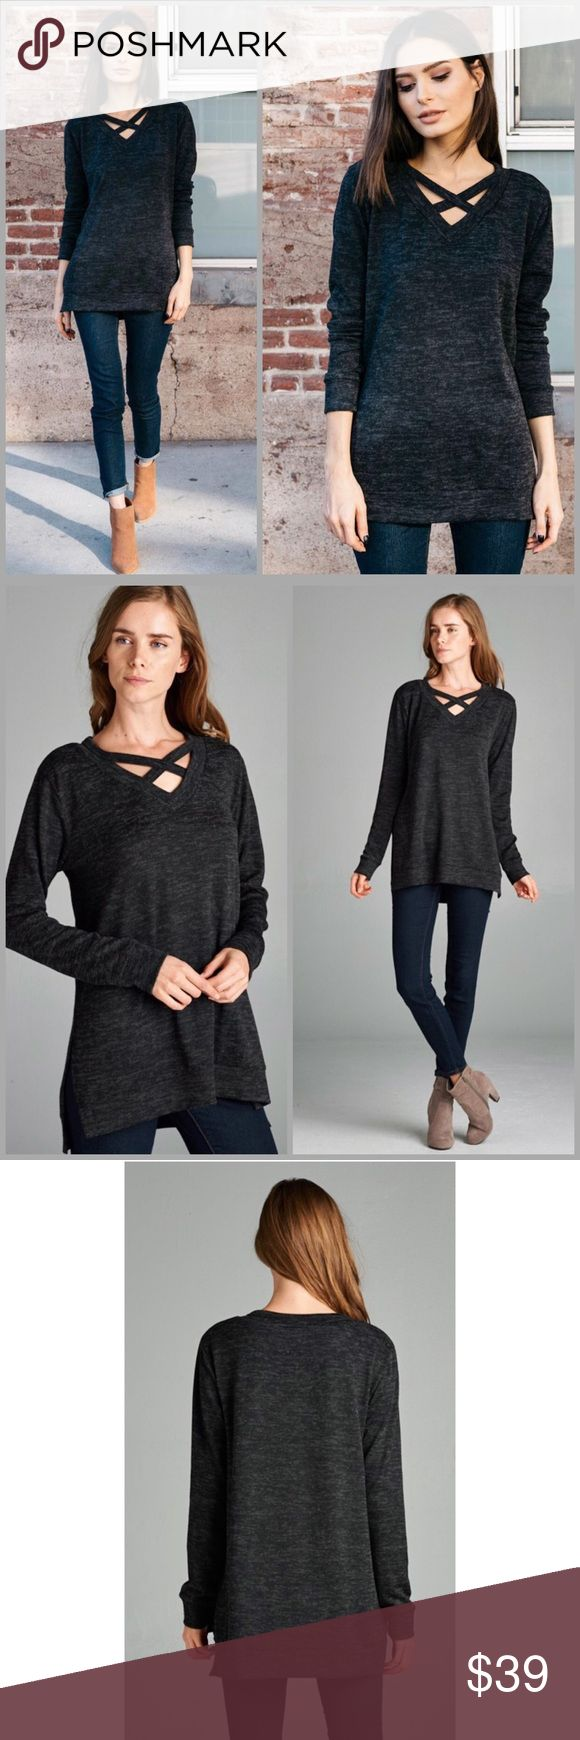 Black Criss Cross V Neck Sweater On trend black V neck cross cross Sweater. Two tone brushed hacci knit fabric. Size S, M, L, XL. Threads & Trends Sweaters V-Necks